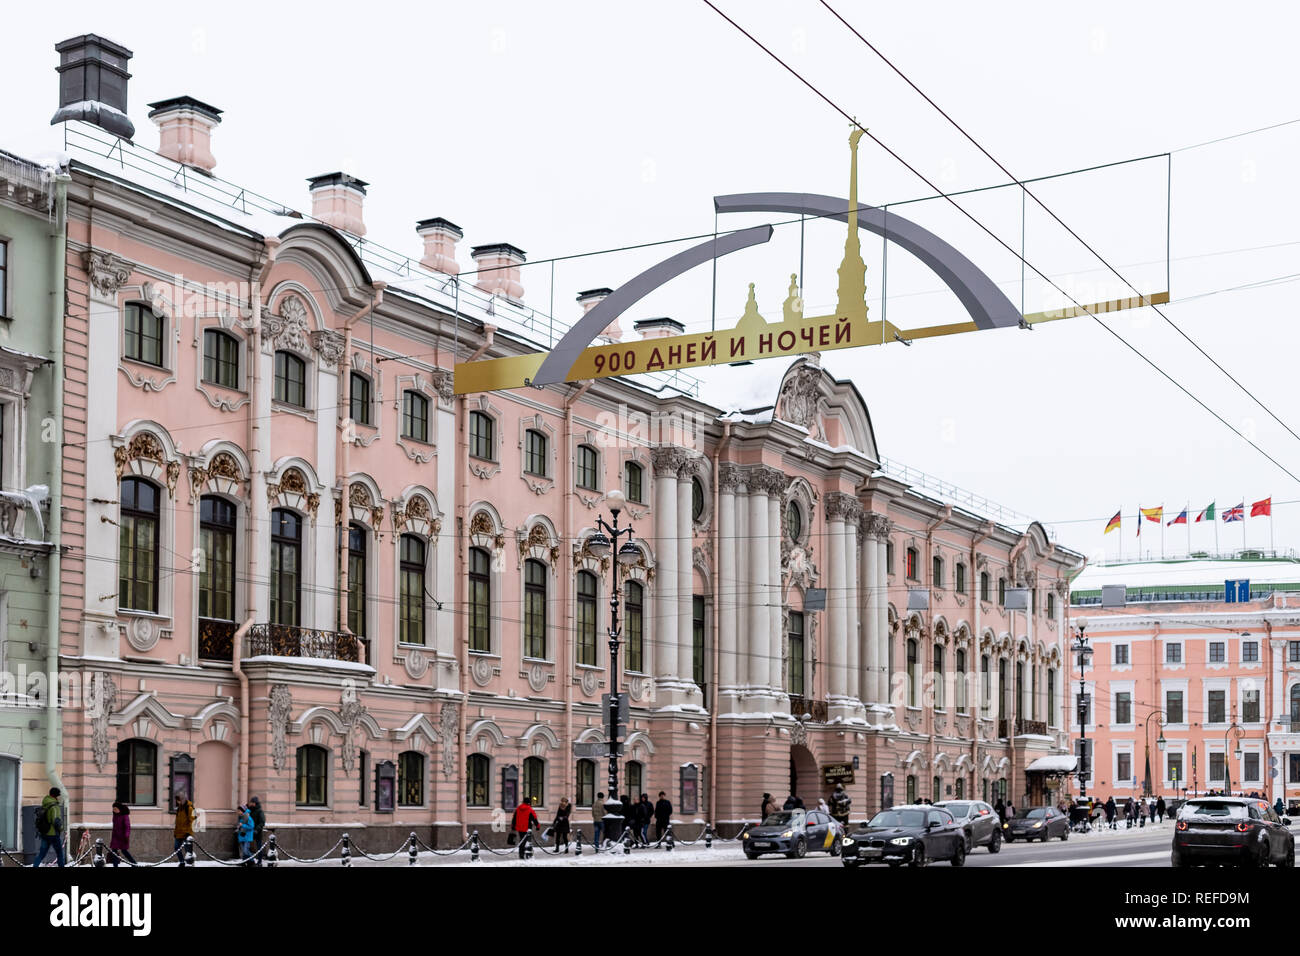 ST. PETERSBURG, RUSSIA ,January 20, 2018: Day of Military Glory of Russia,Day of complete liberation of Leningrad from the fascist blockade in 1944.75 years since the lifting of the siege of Leningrad will be celebrated on January 27.Nevsky Prospect.Street decoration - Stock Image